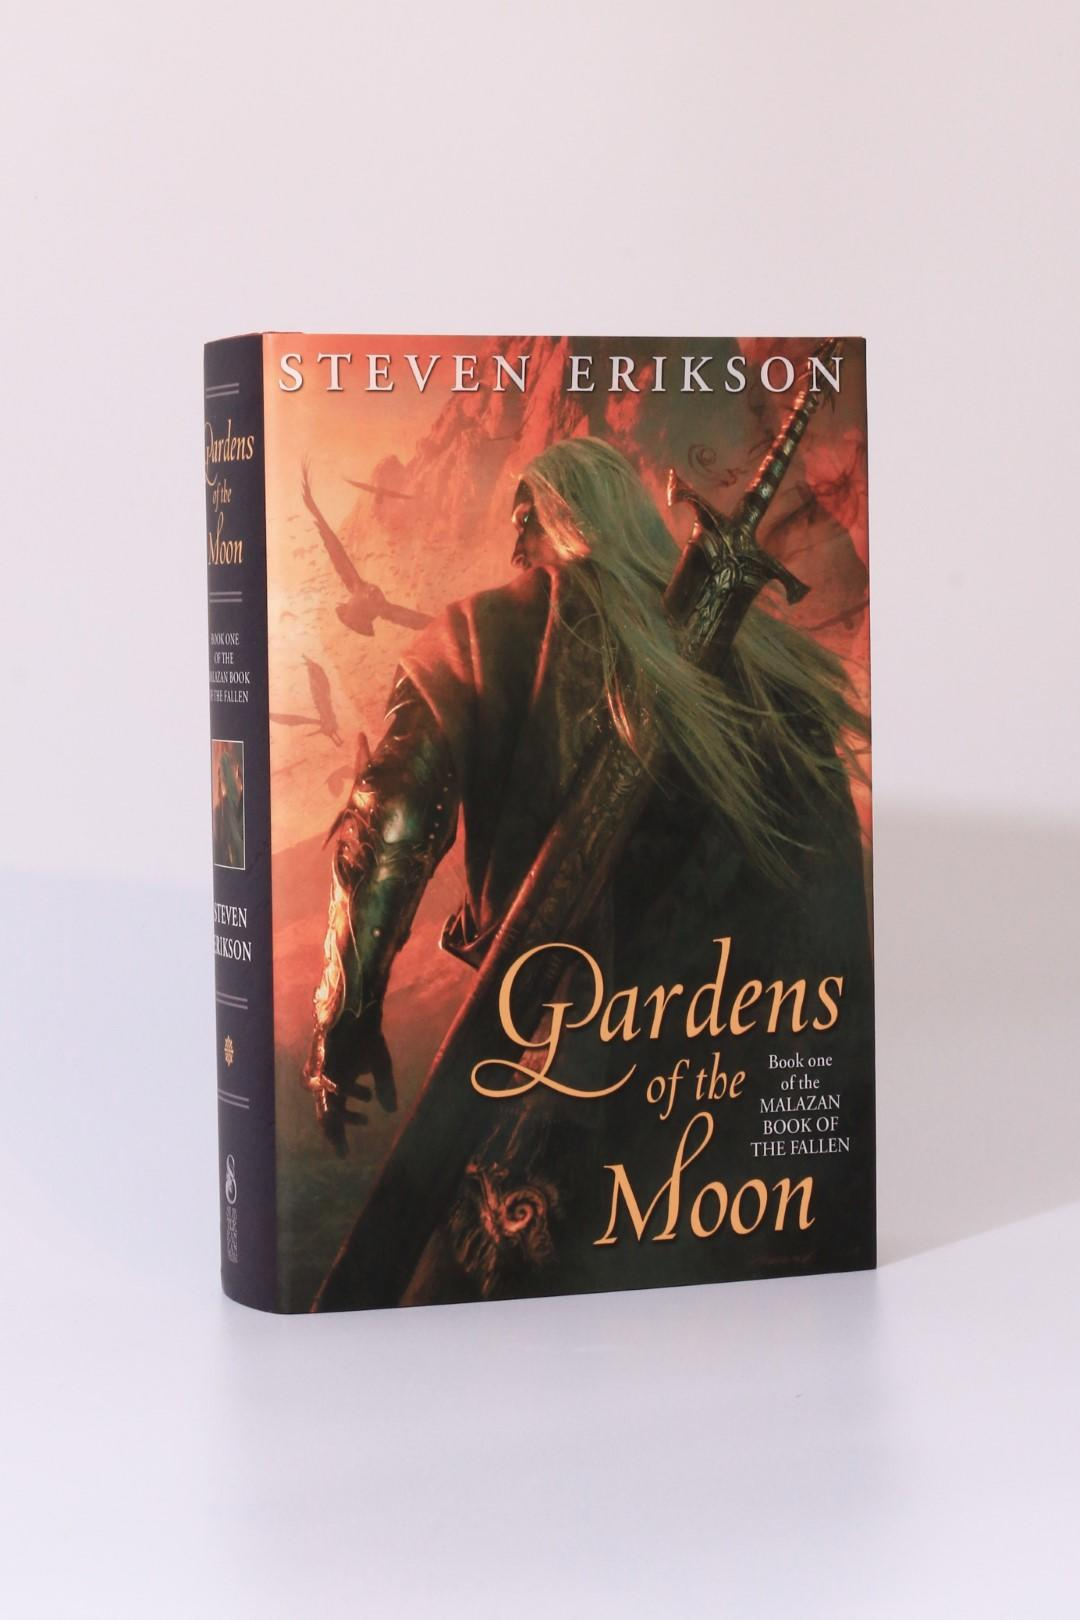 Steven Erikson - Gardens of the Moon - Subterranean Press, 2009, Signed Limited Edition.